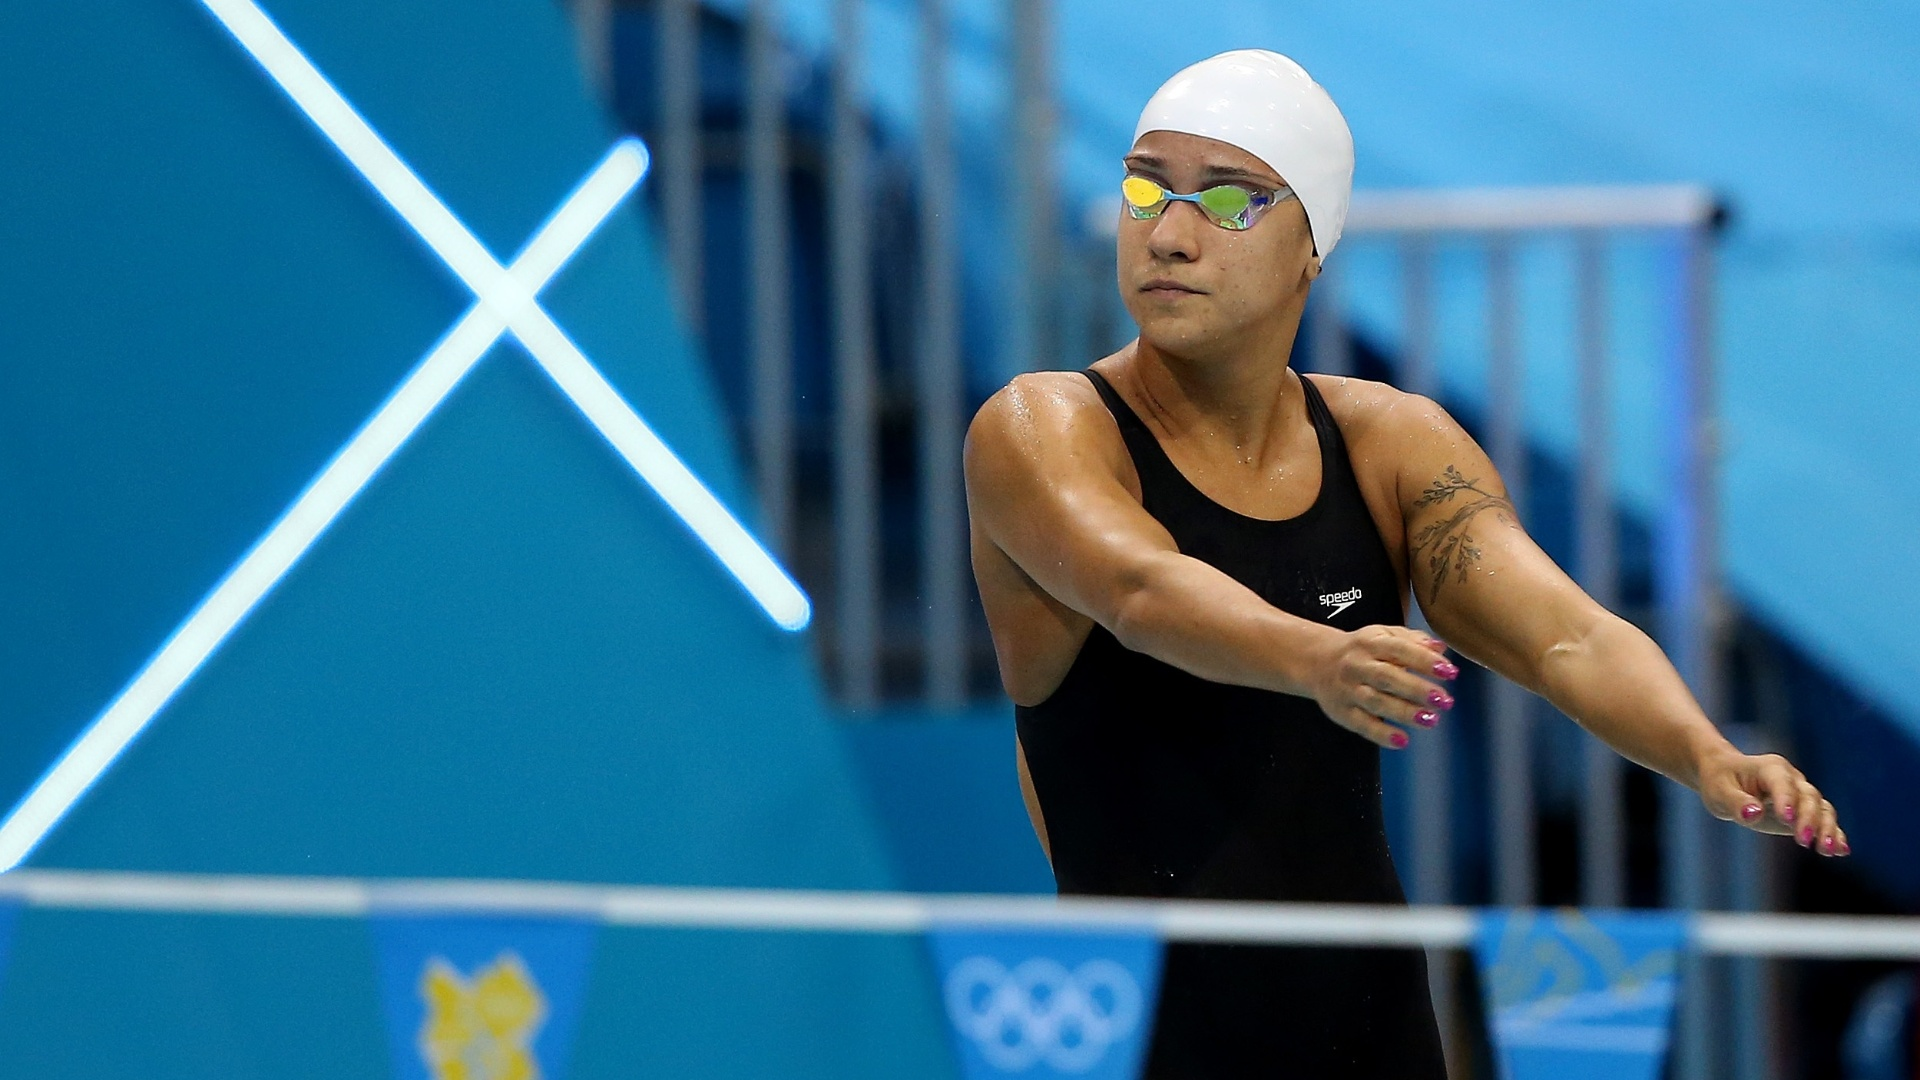 Joanna Maranho passou  semifinal dos 200 m medley com o 16 e ltimo tempo